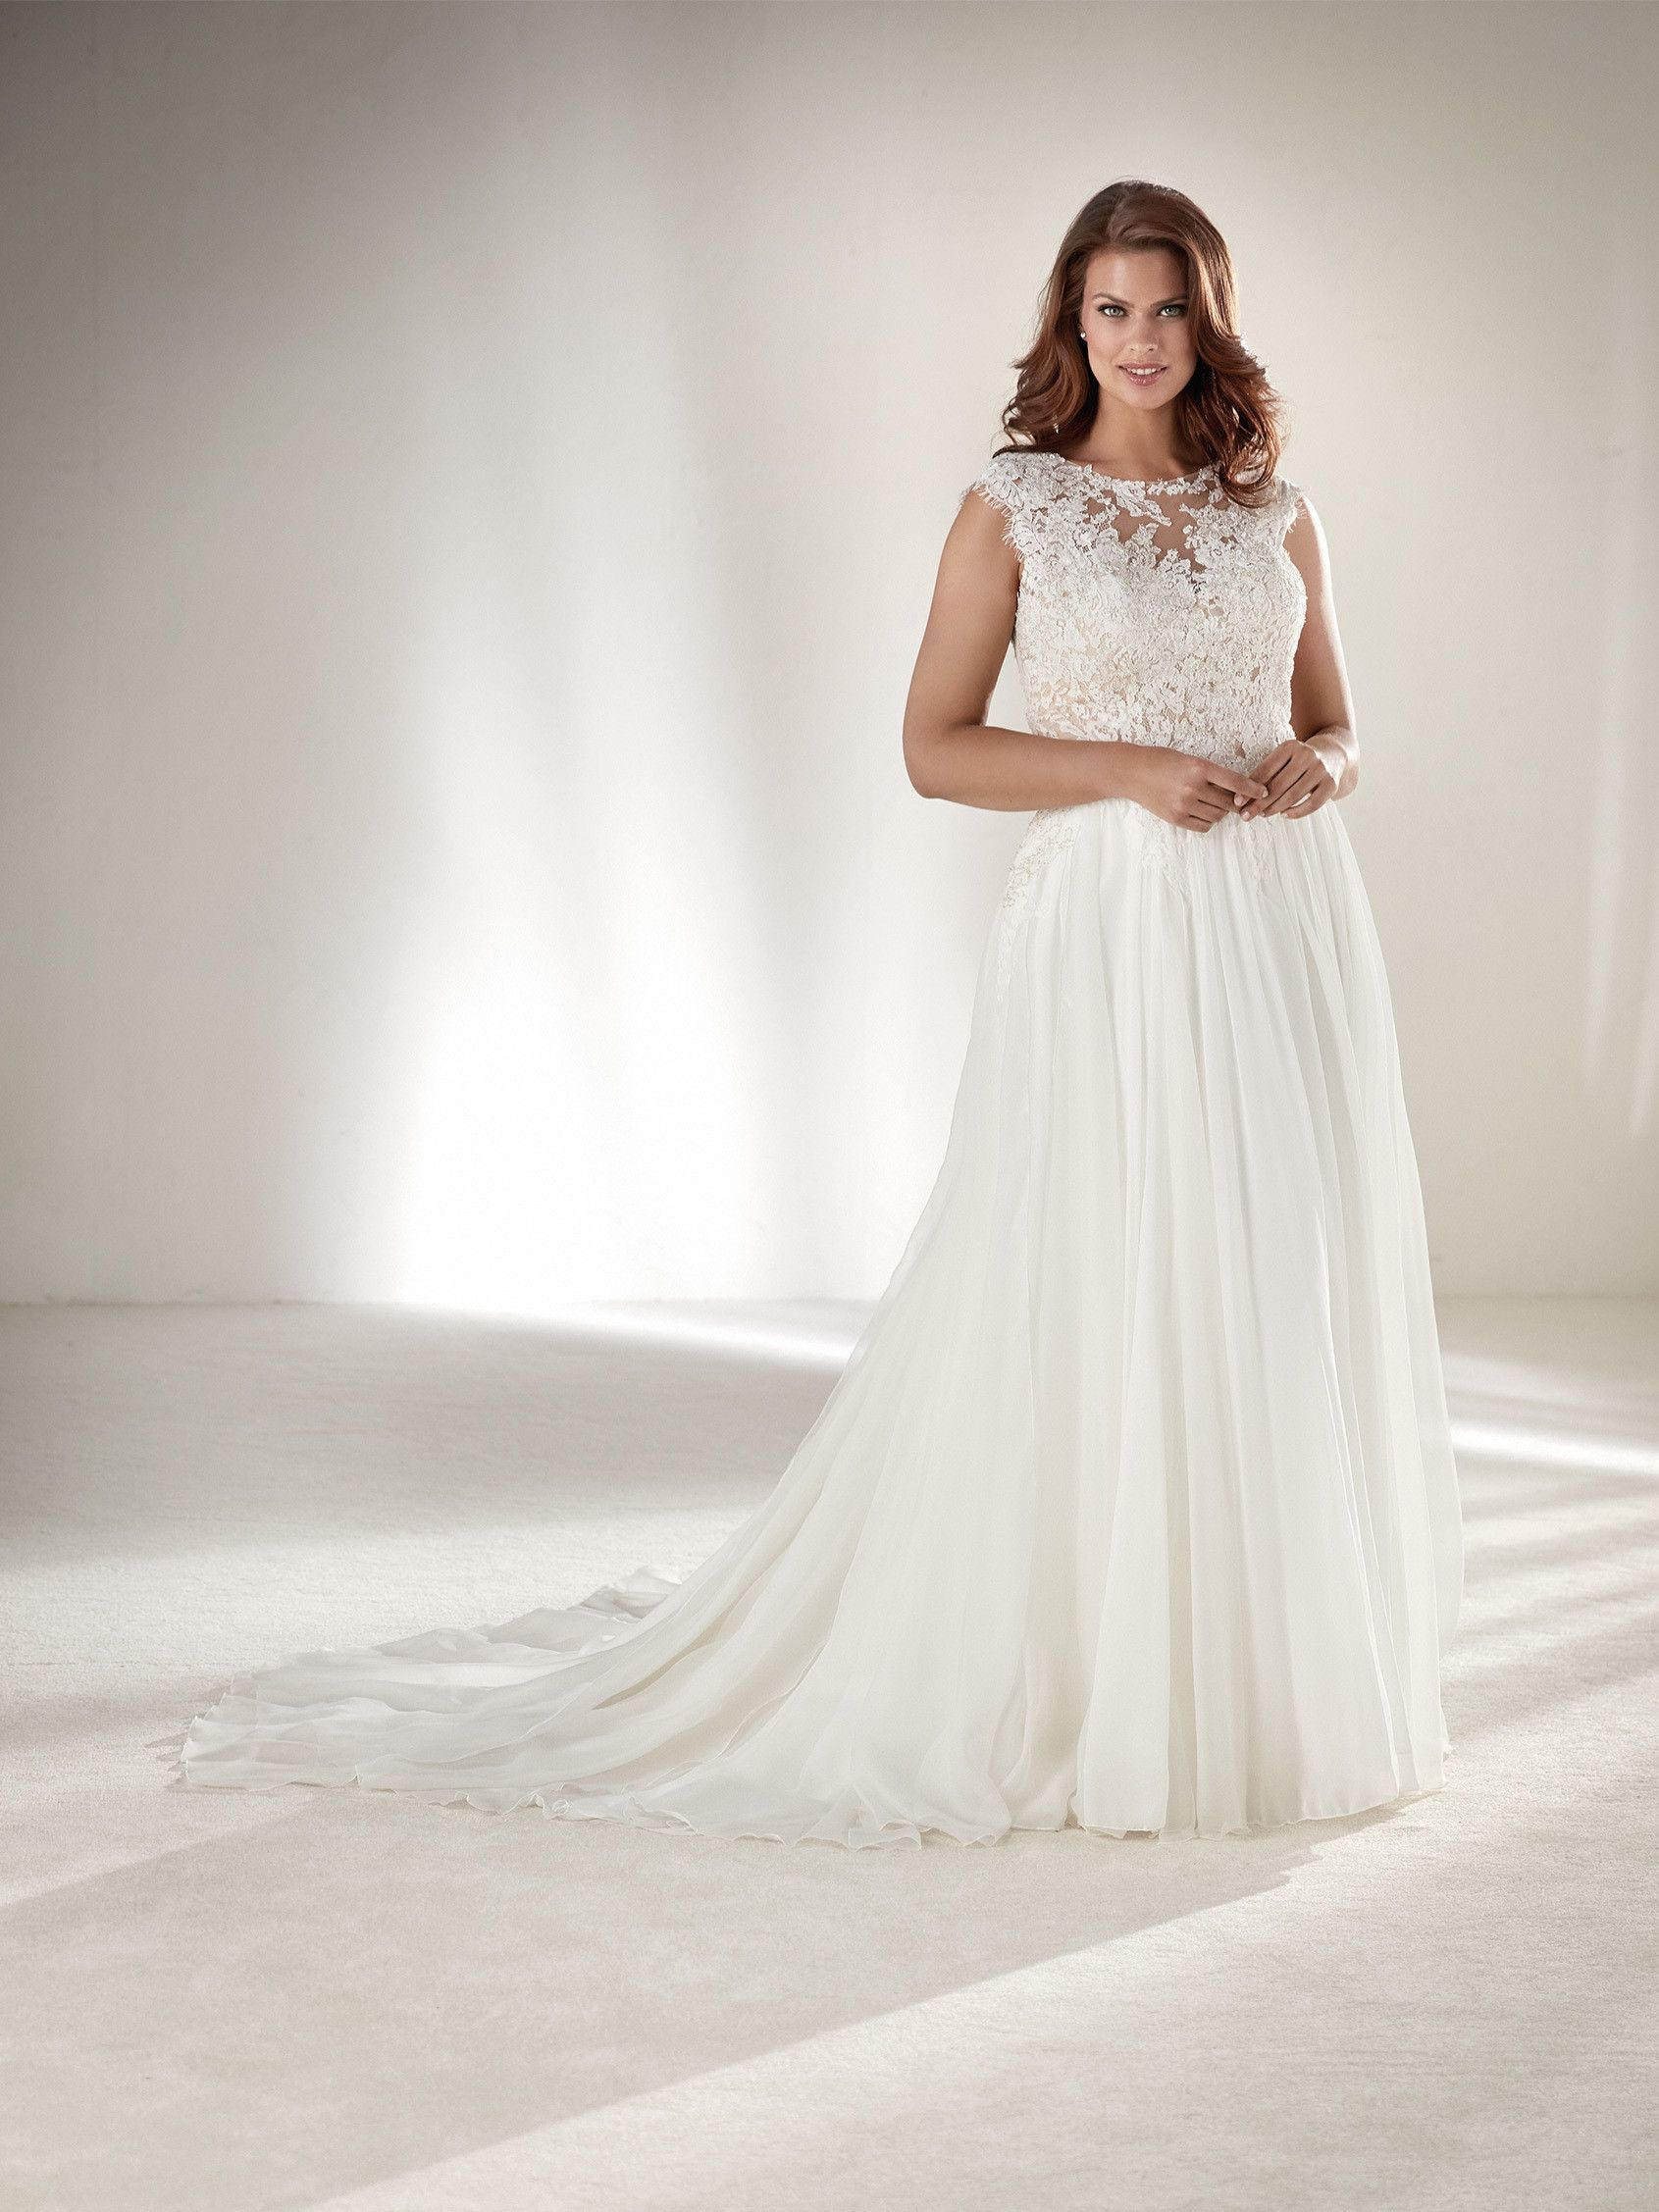 Plus Size High Necked Wedding Dress Ovias 2018 Collection